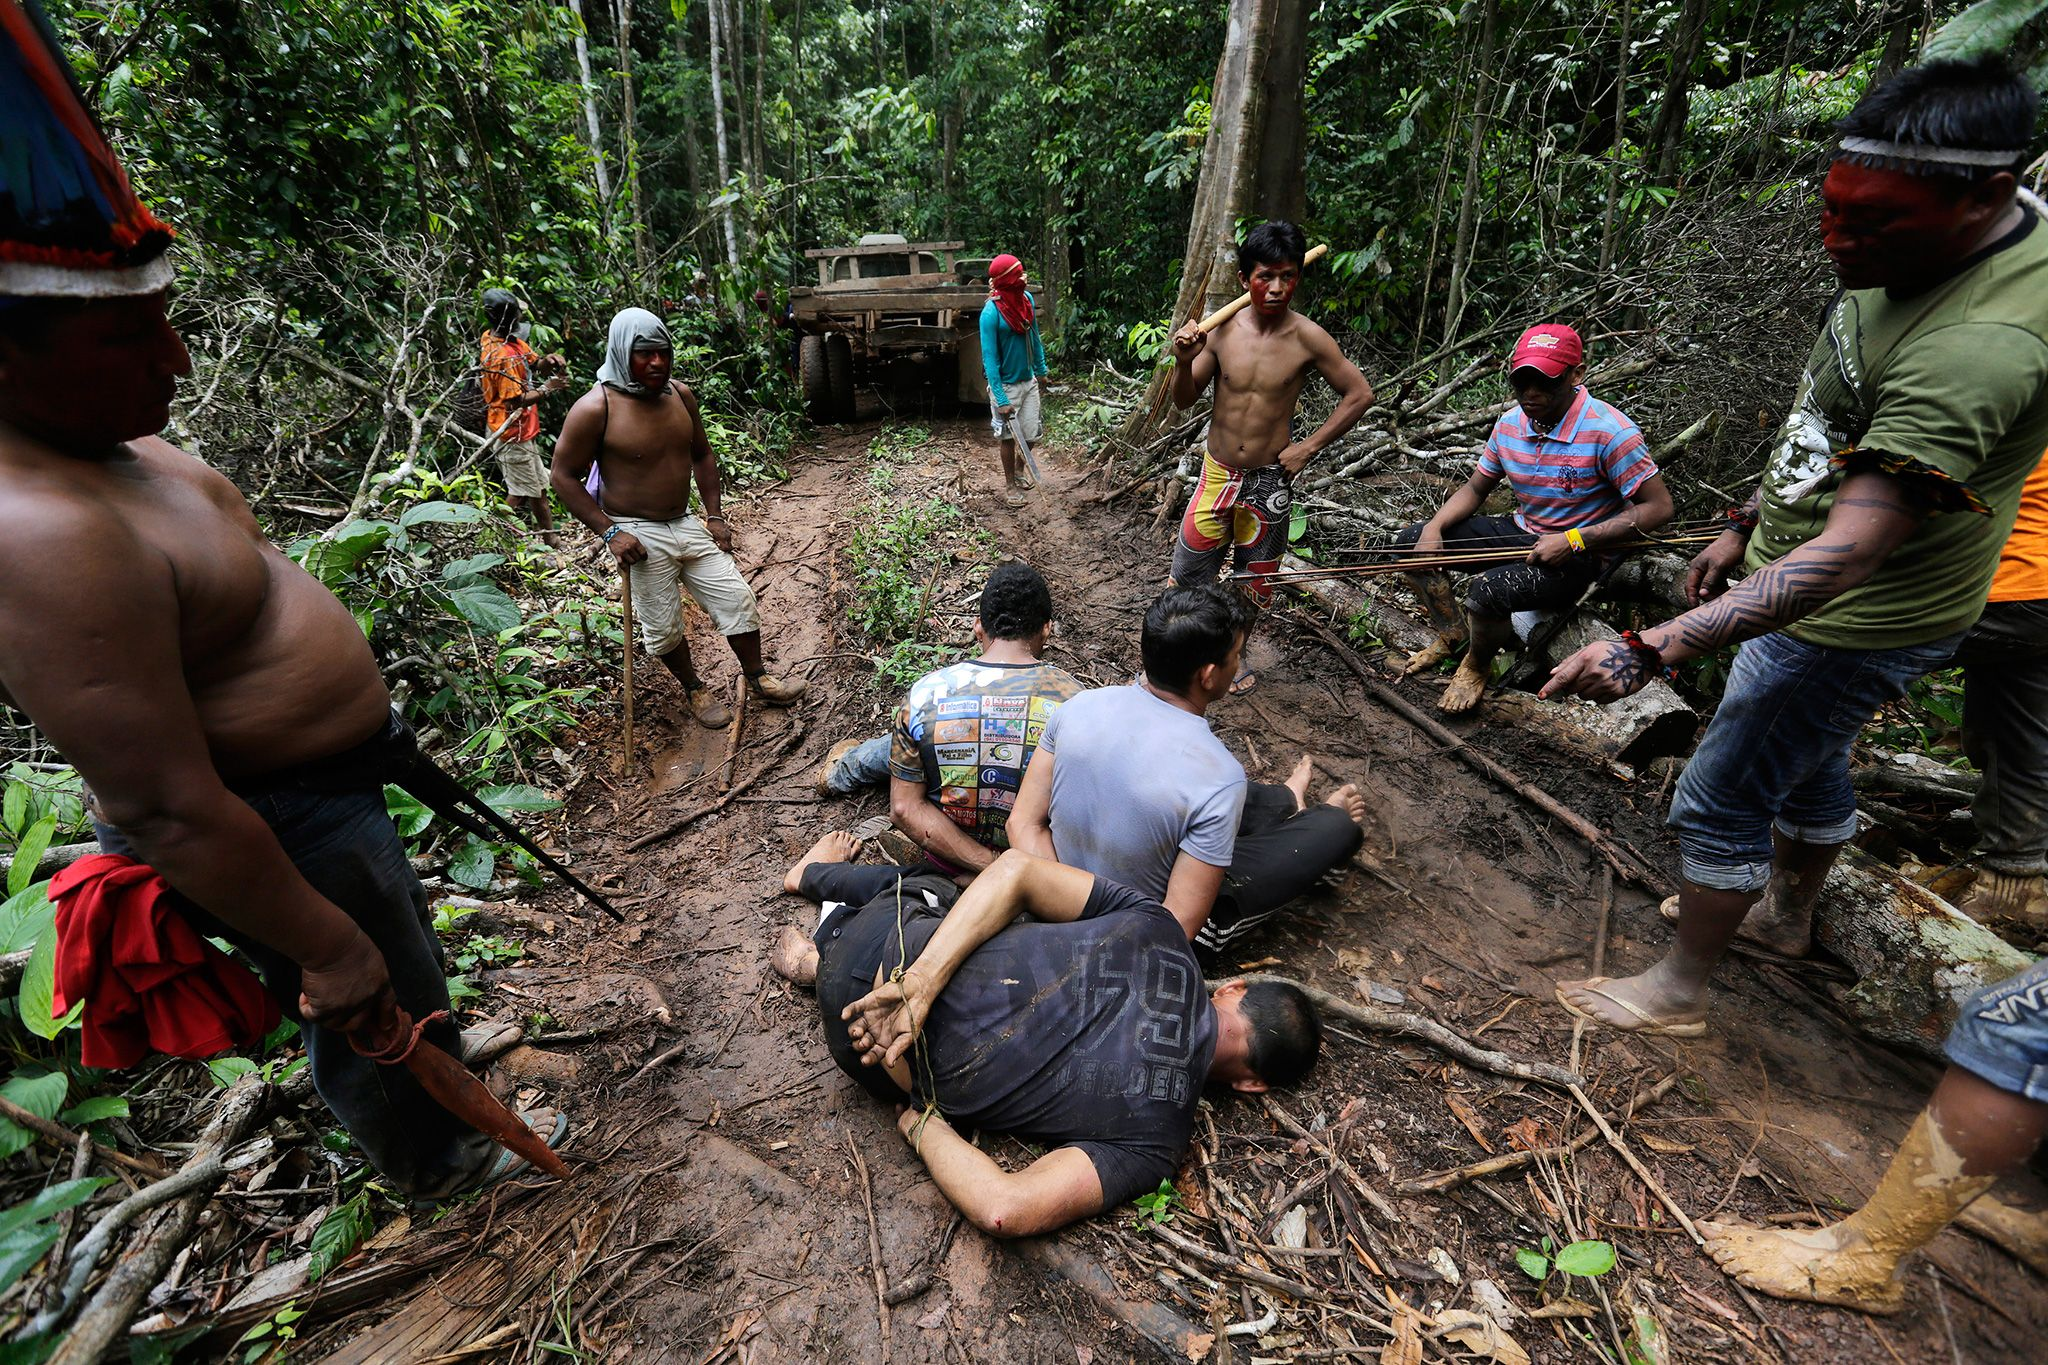 Illegal Loggers Wage War On Indigenous People In Brazil Amazon